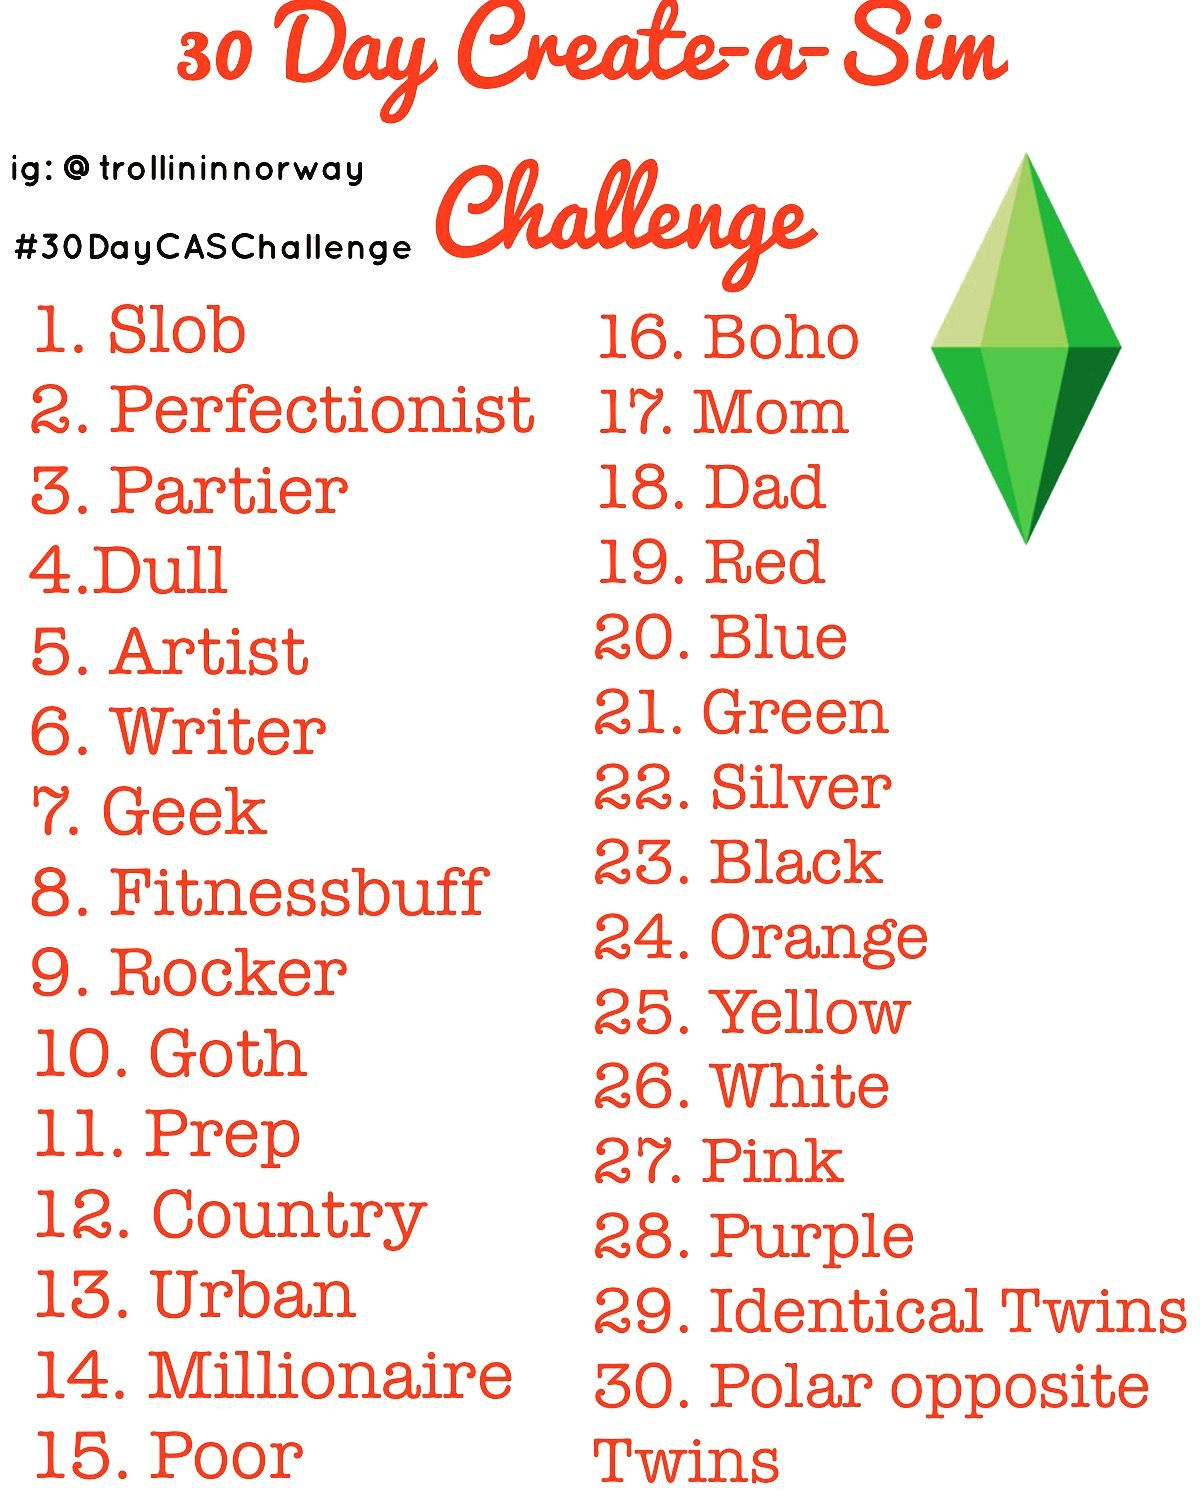 I Made A Create A Sim 30 Day Challenge Please Tag Me In Them So I Can See Your Work And Use 30daycaschallenge Thesims Sims 4 Challenges Sims Challenge Sims